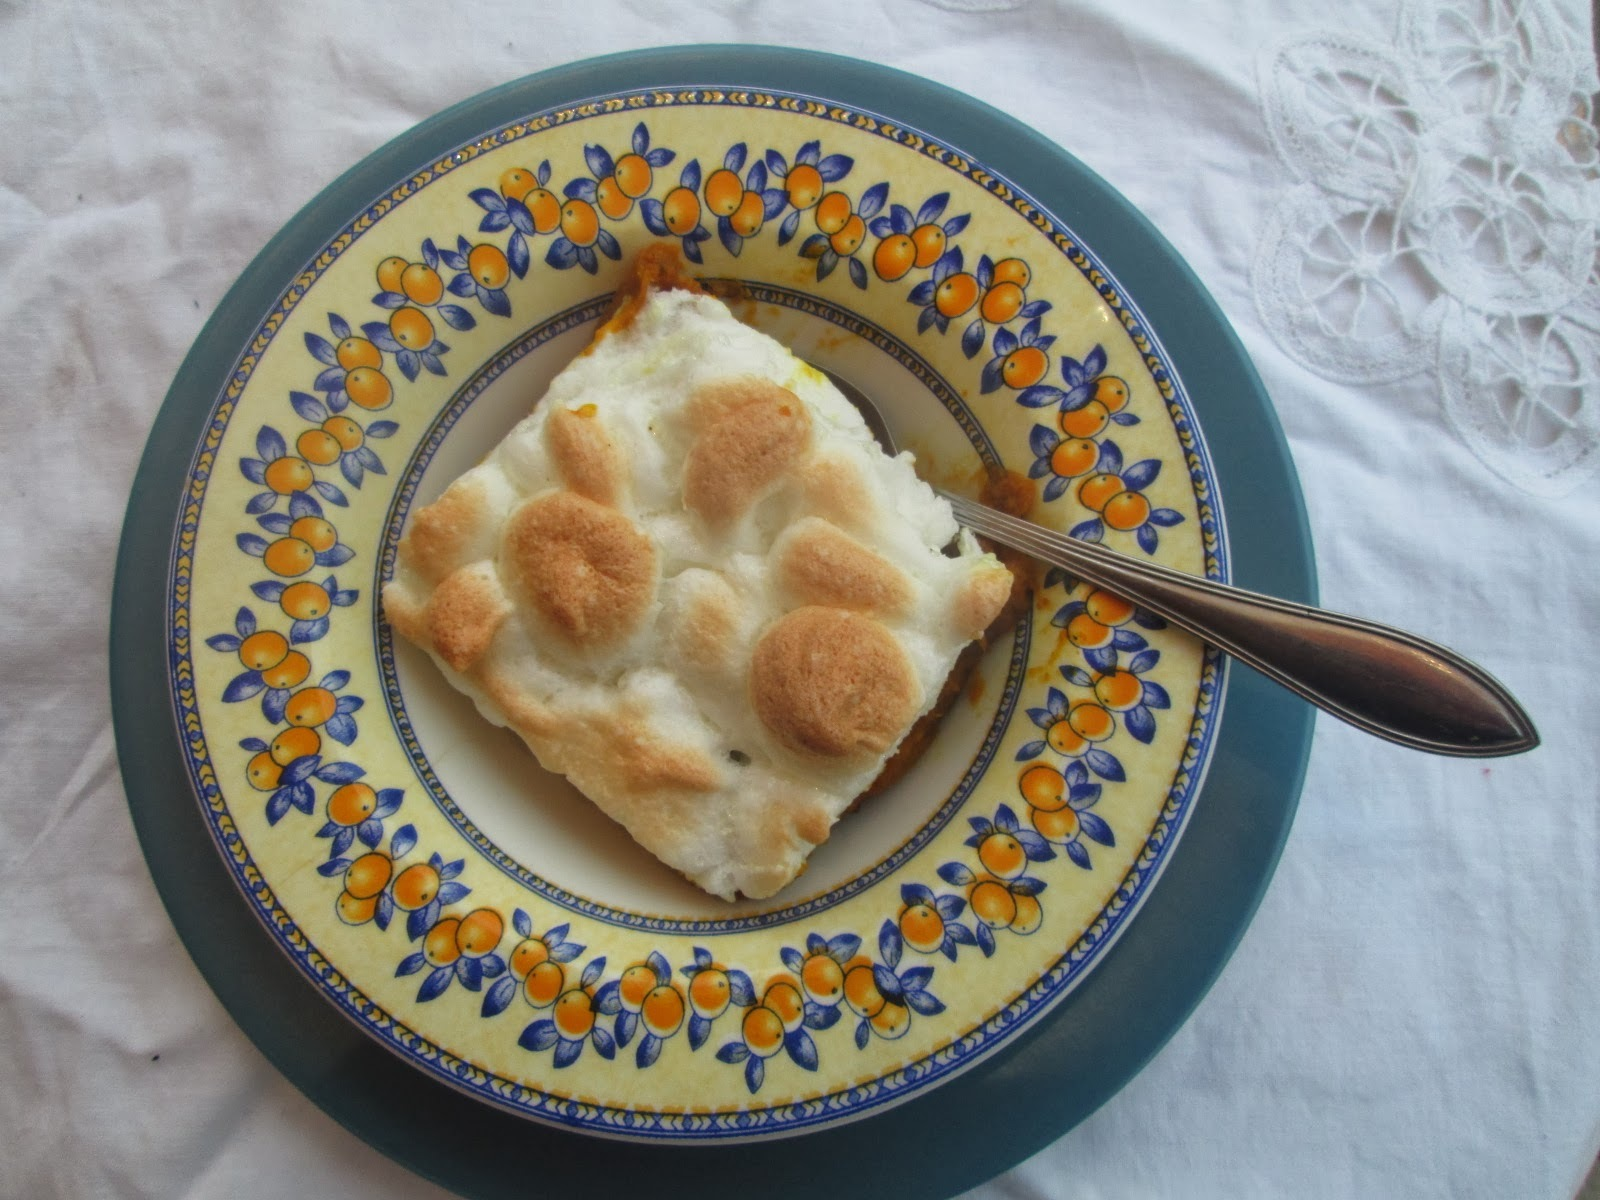 Sweet potatoes with marshmallow meringue (postre de camotes con merengue)